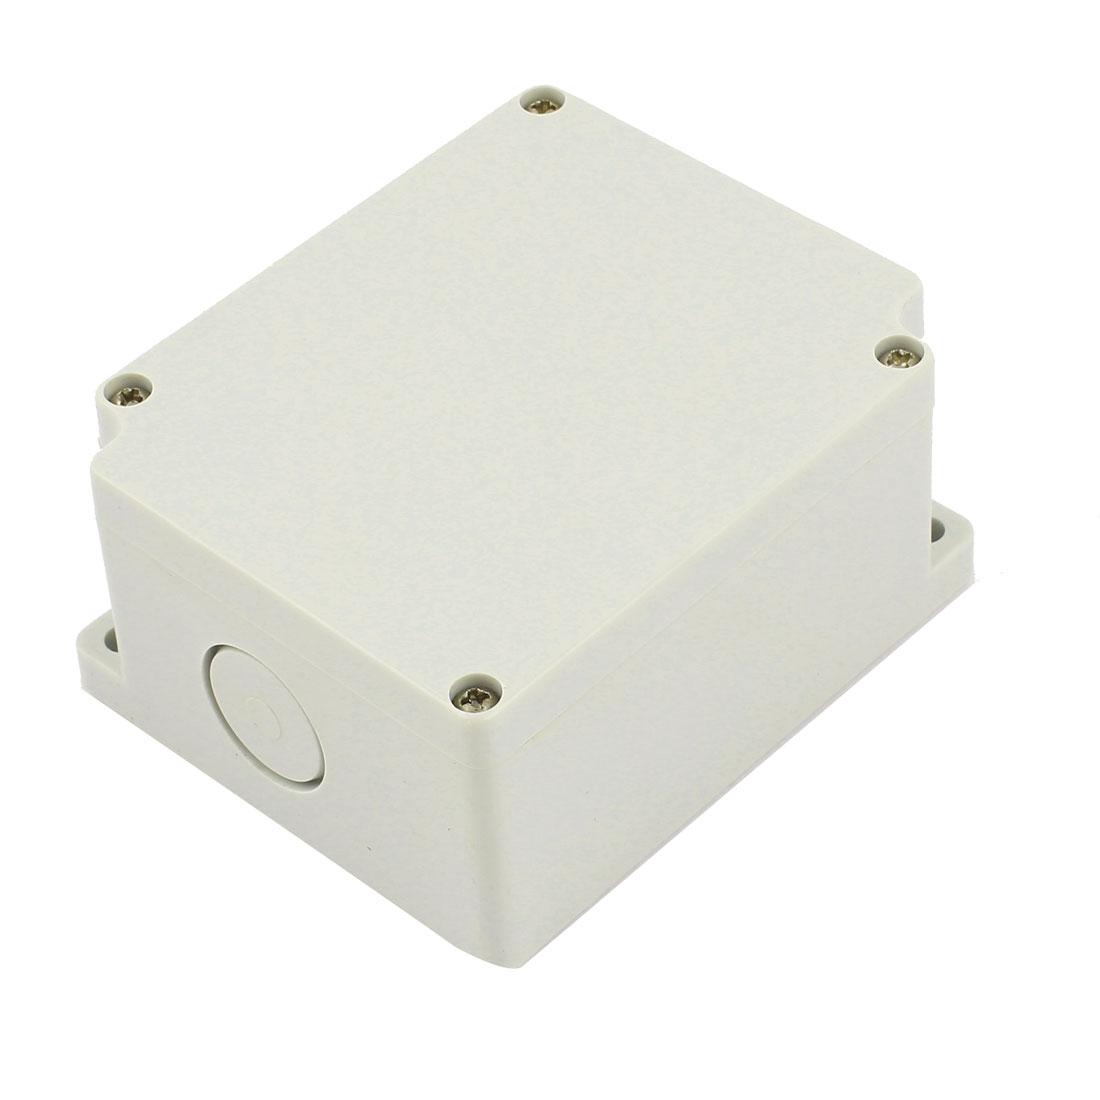 90mm x 75mm x 43mm Waterproof Plastic Sealed Electrical Junction Box